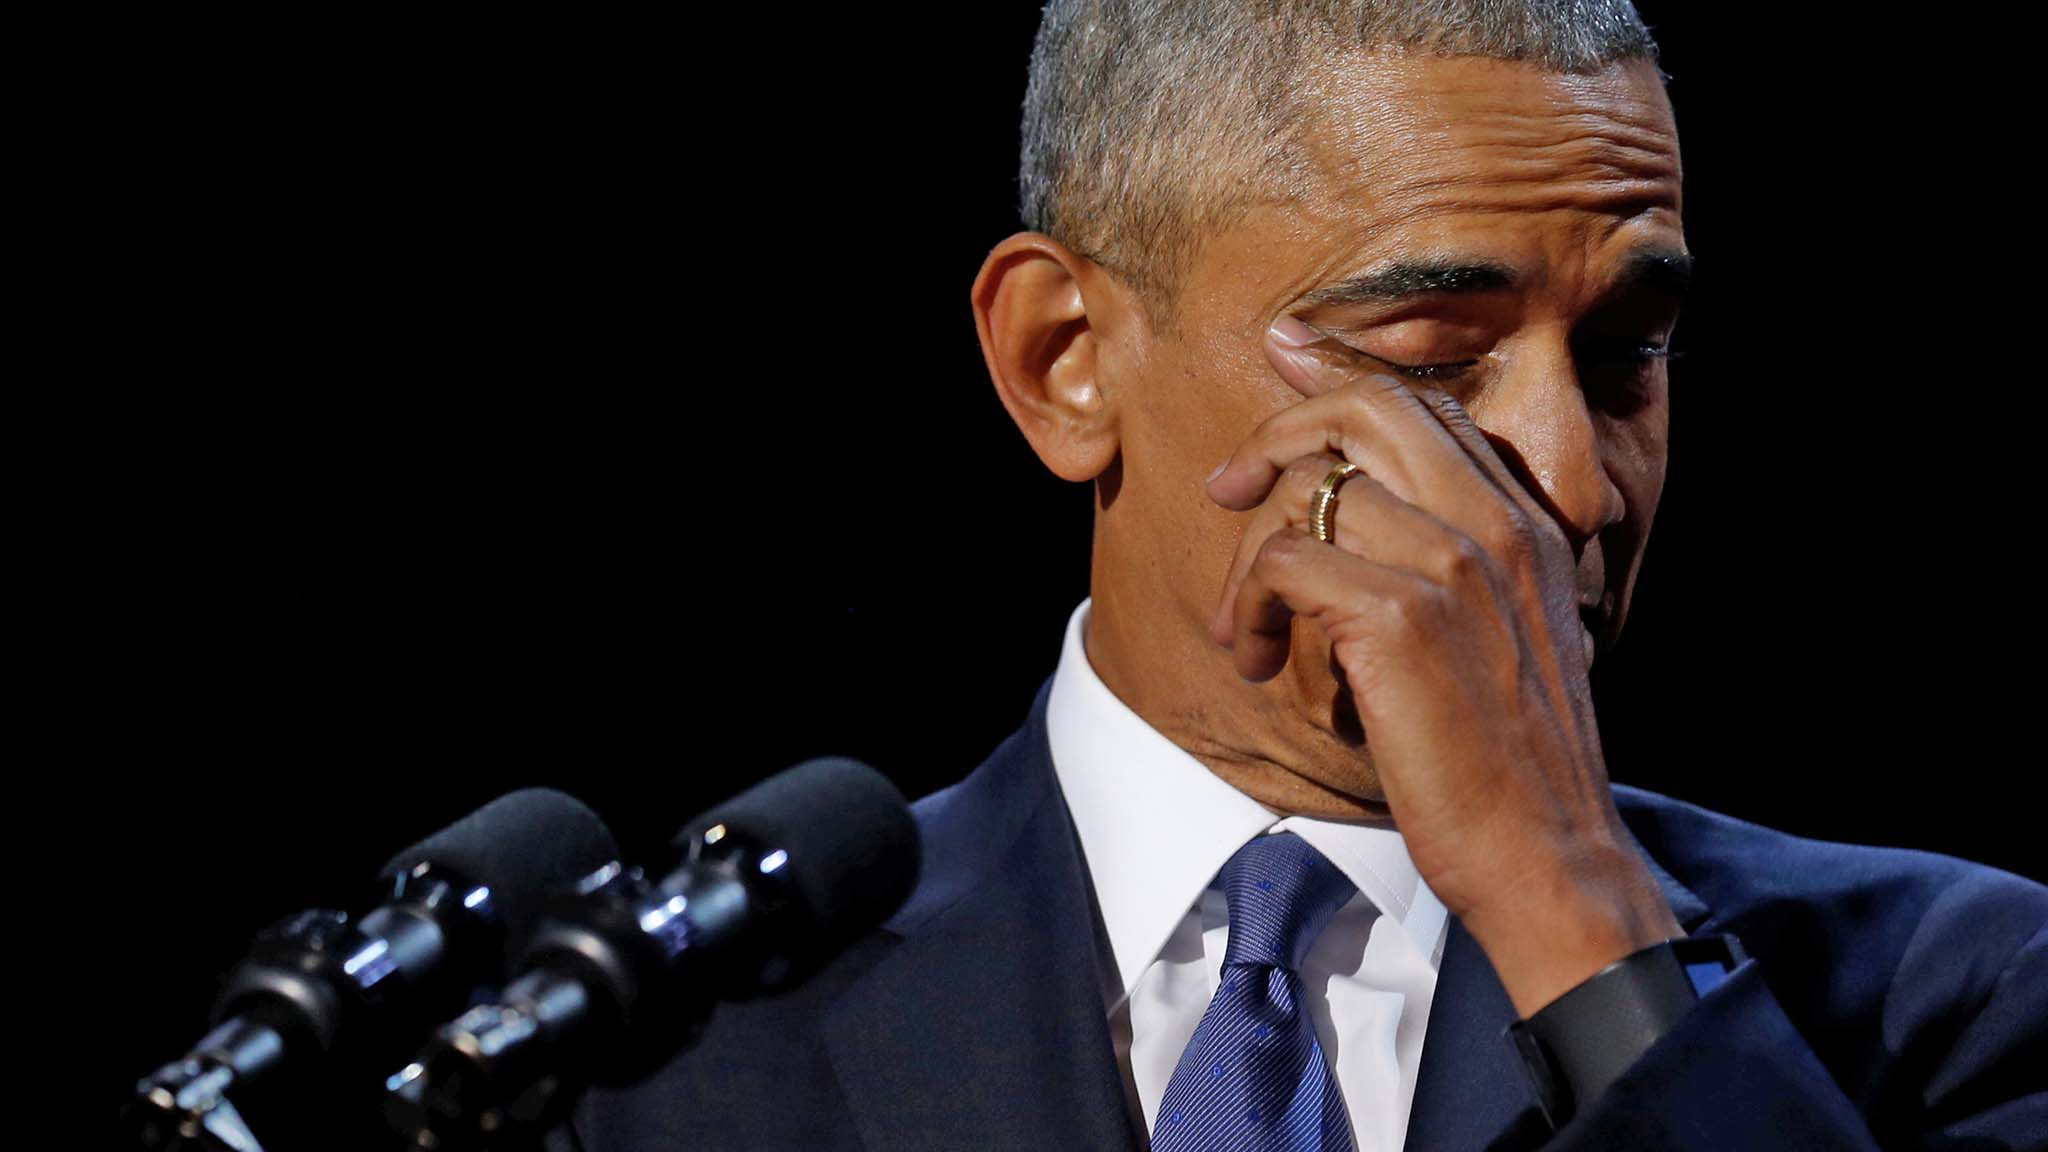 Obama wipes away tears as he delivers his farewell address in Chicago